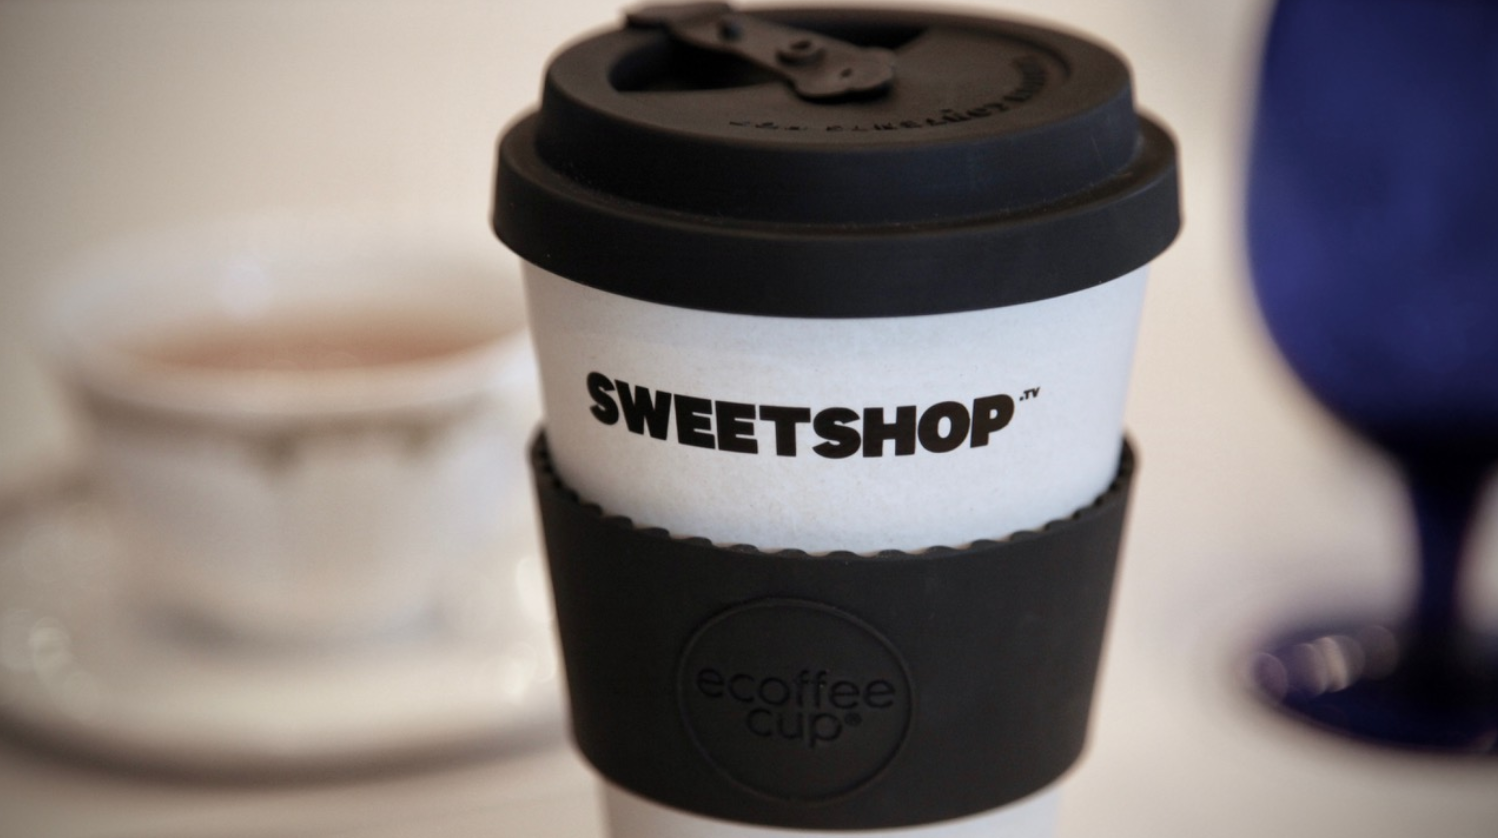 Sweet Shop Coffee Cup